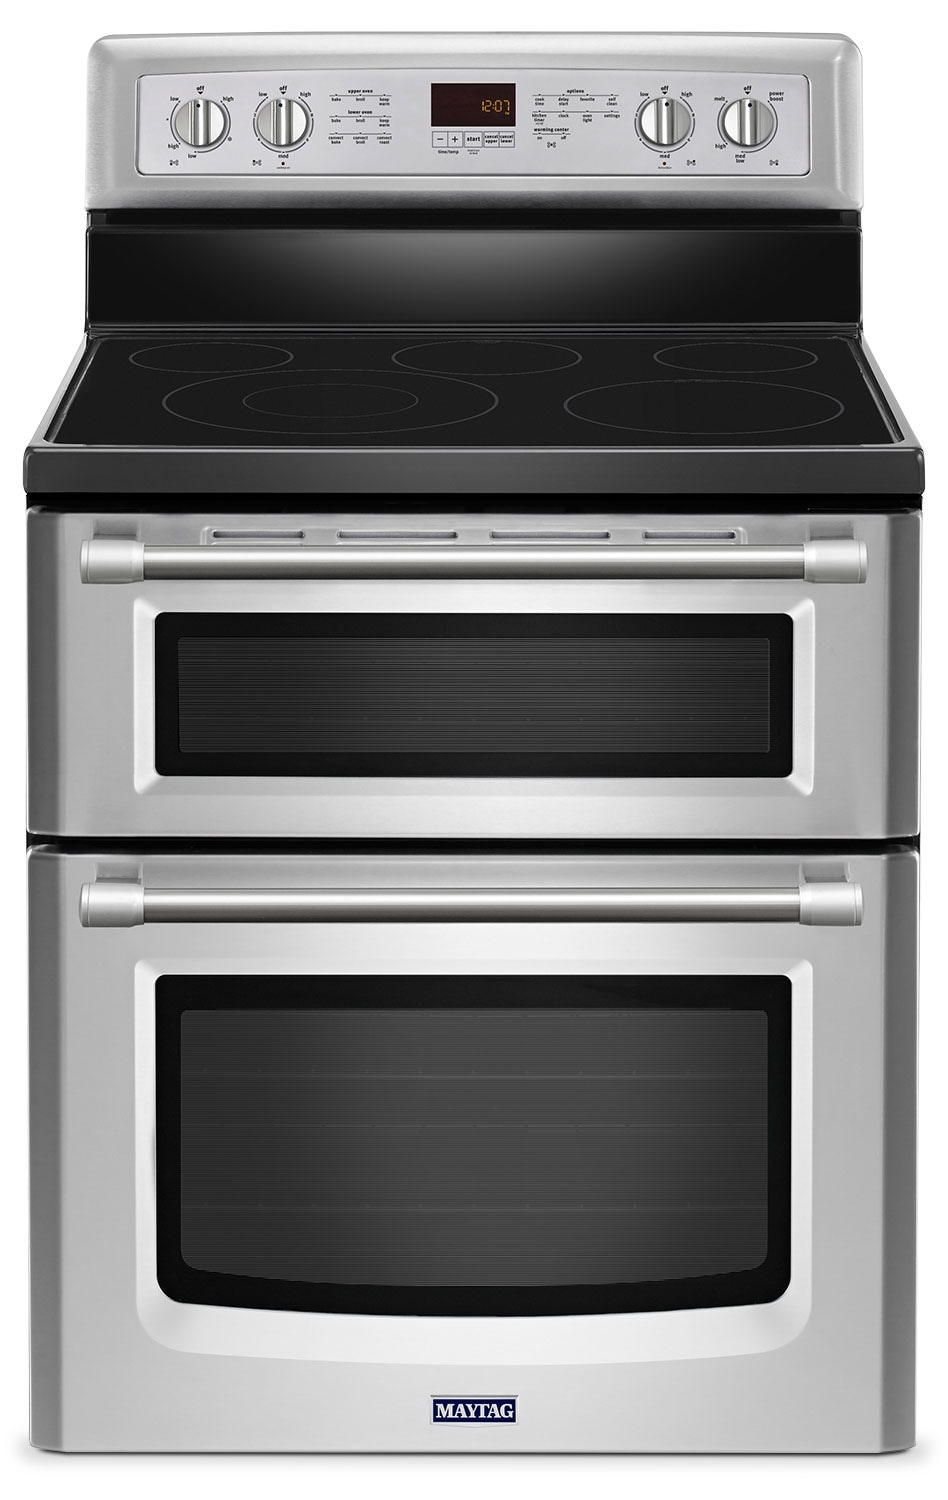 Maytag® Gemini® 6.7 Cu. Ft. Double Oven Electric Range – Stainless Steel